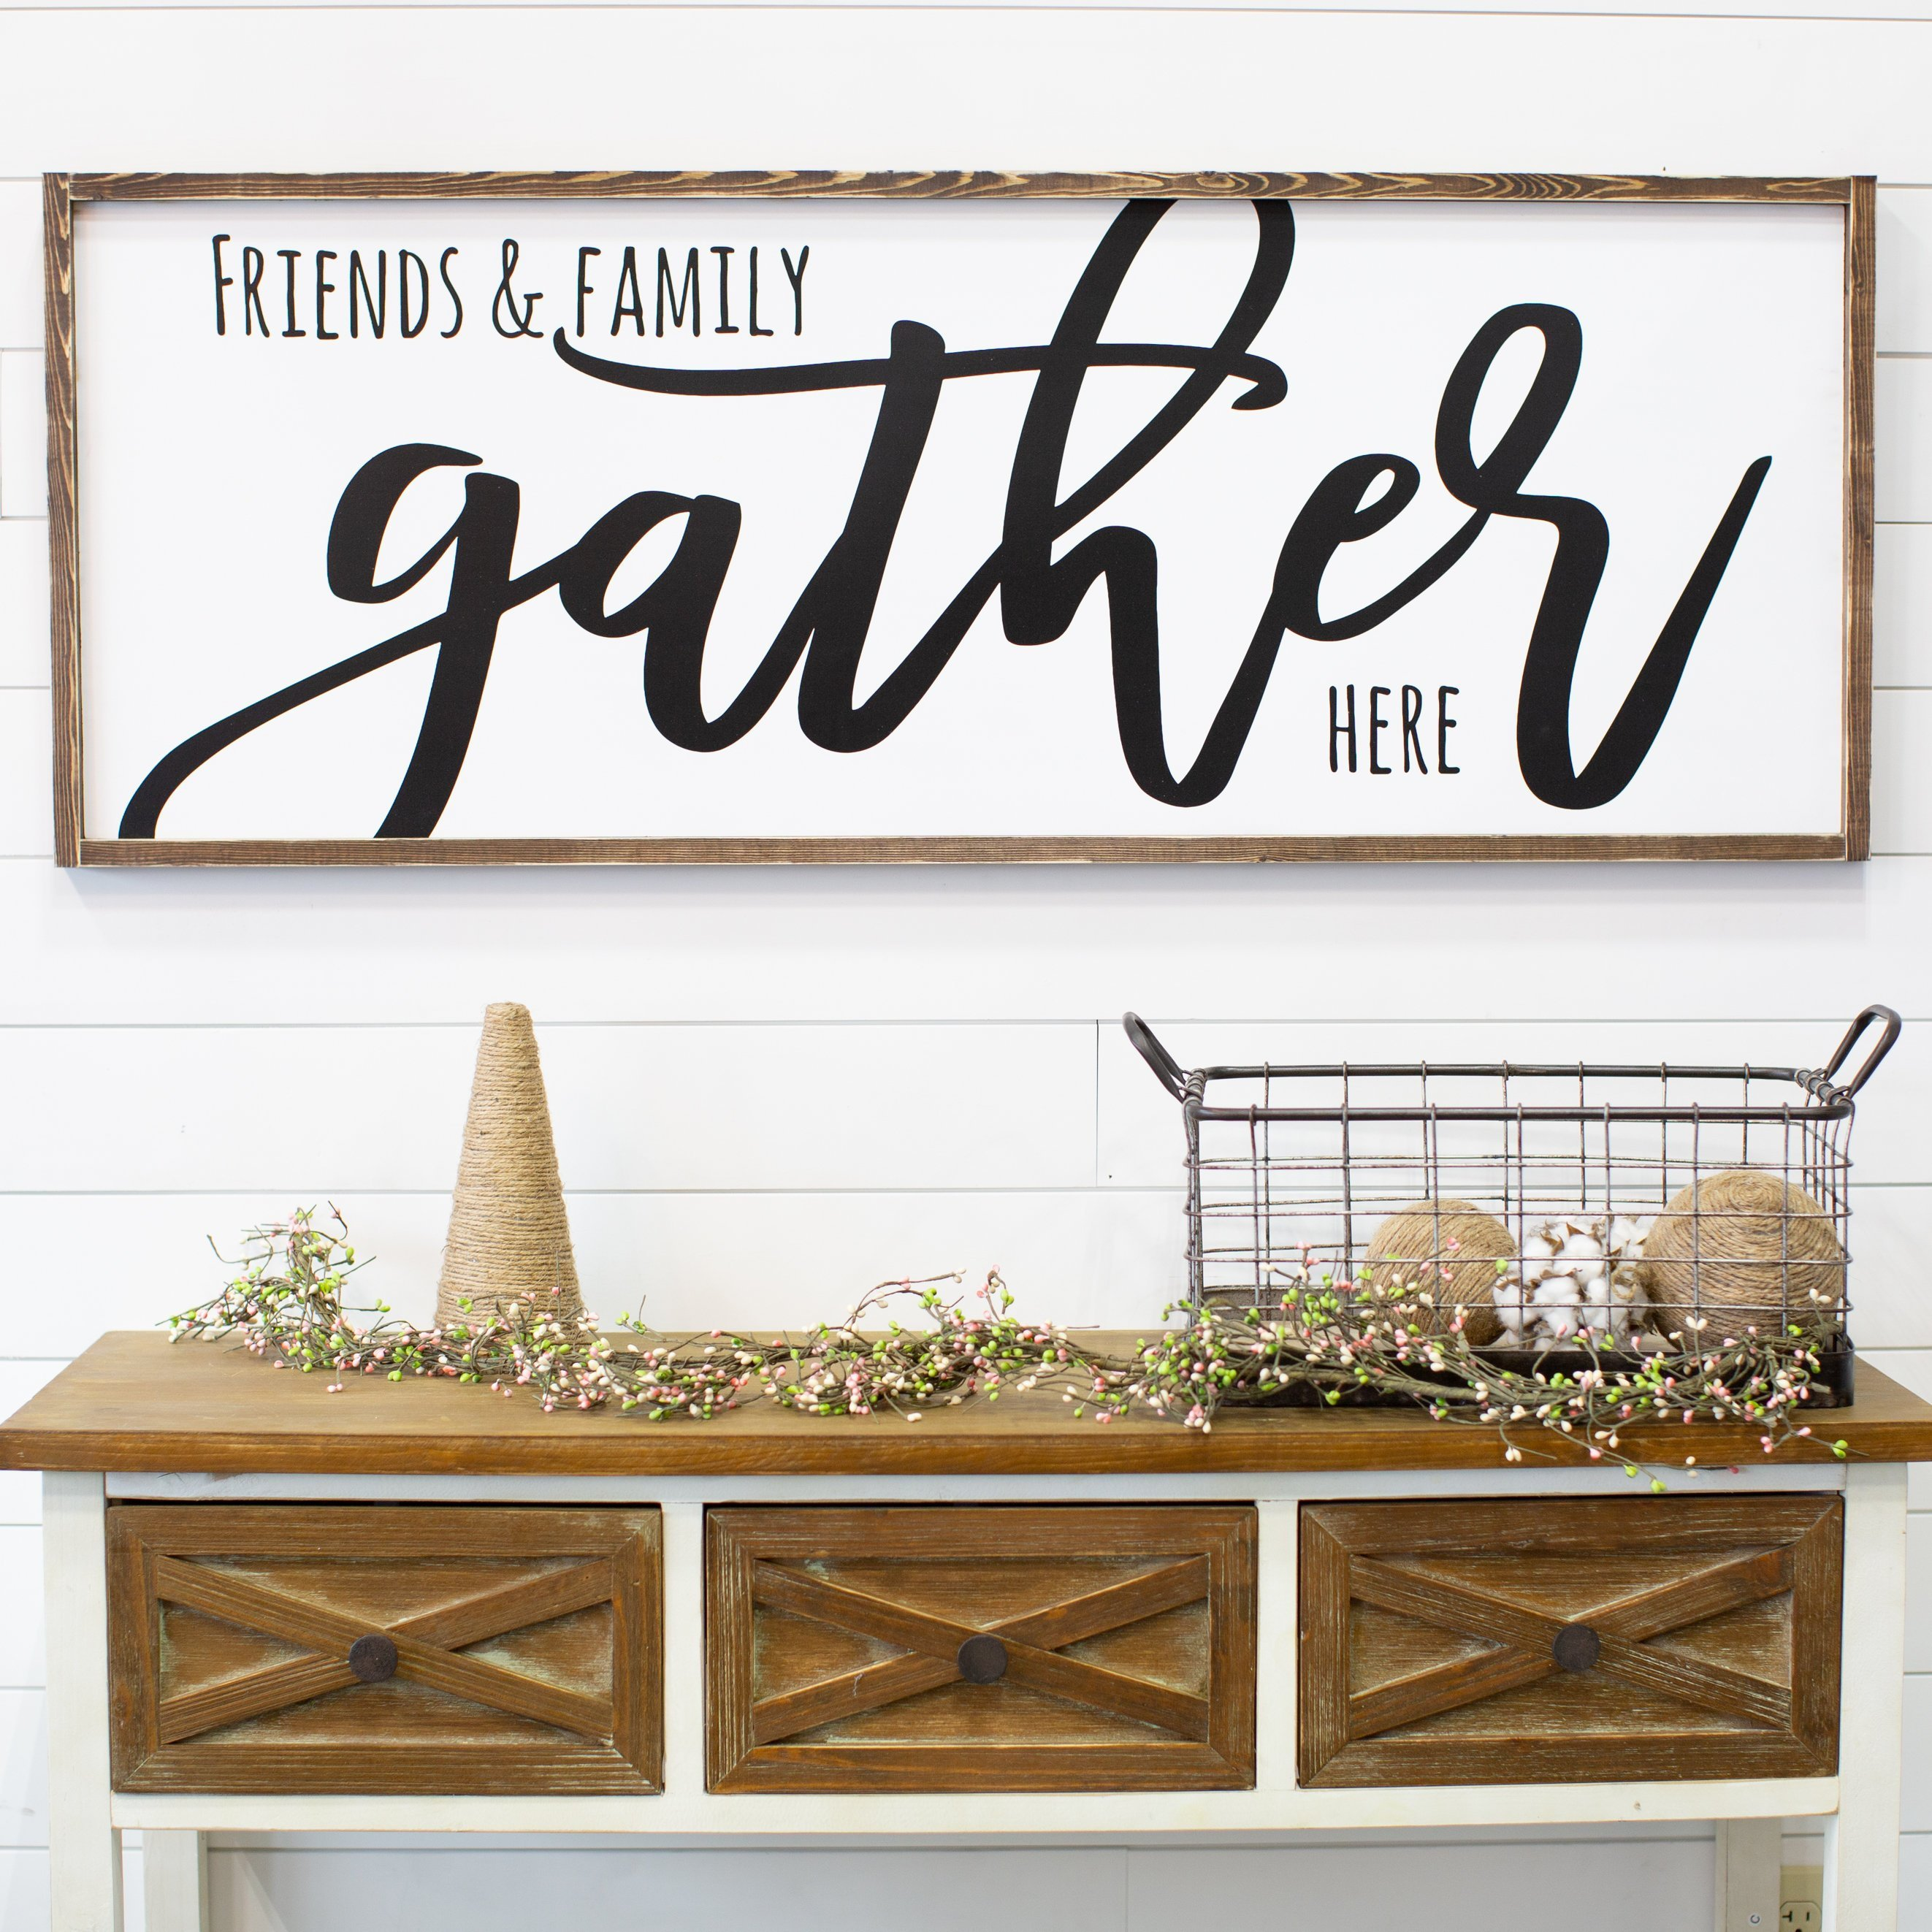 Friends & Family Gather Here | The Love Built Shop